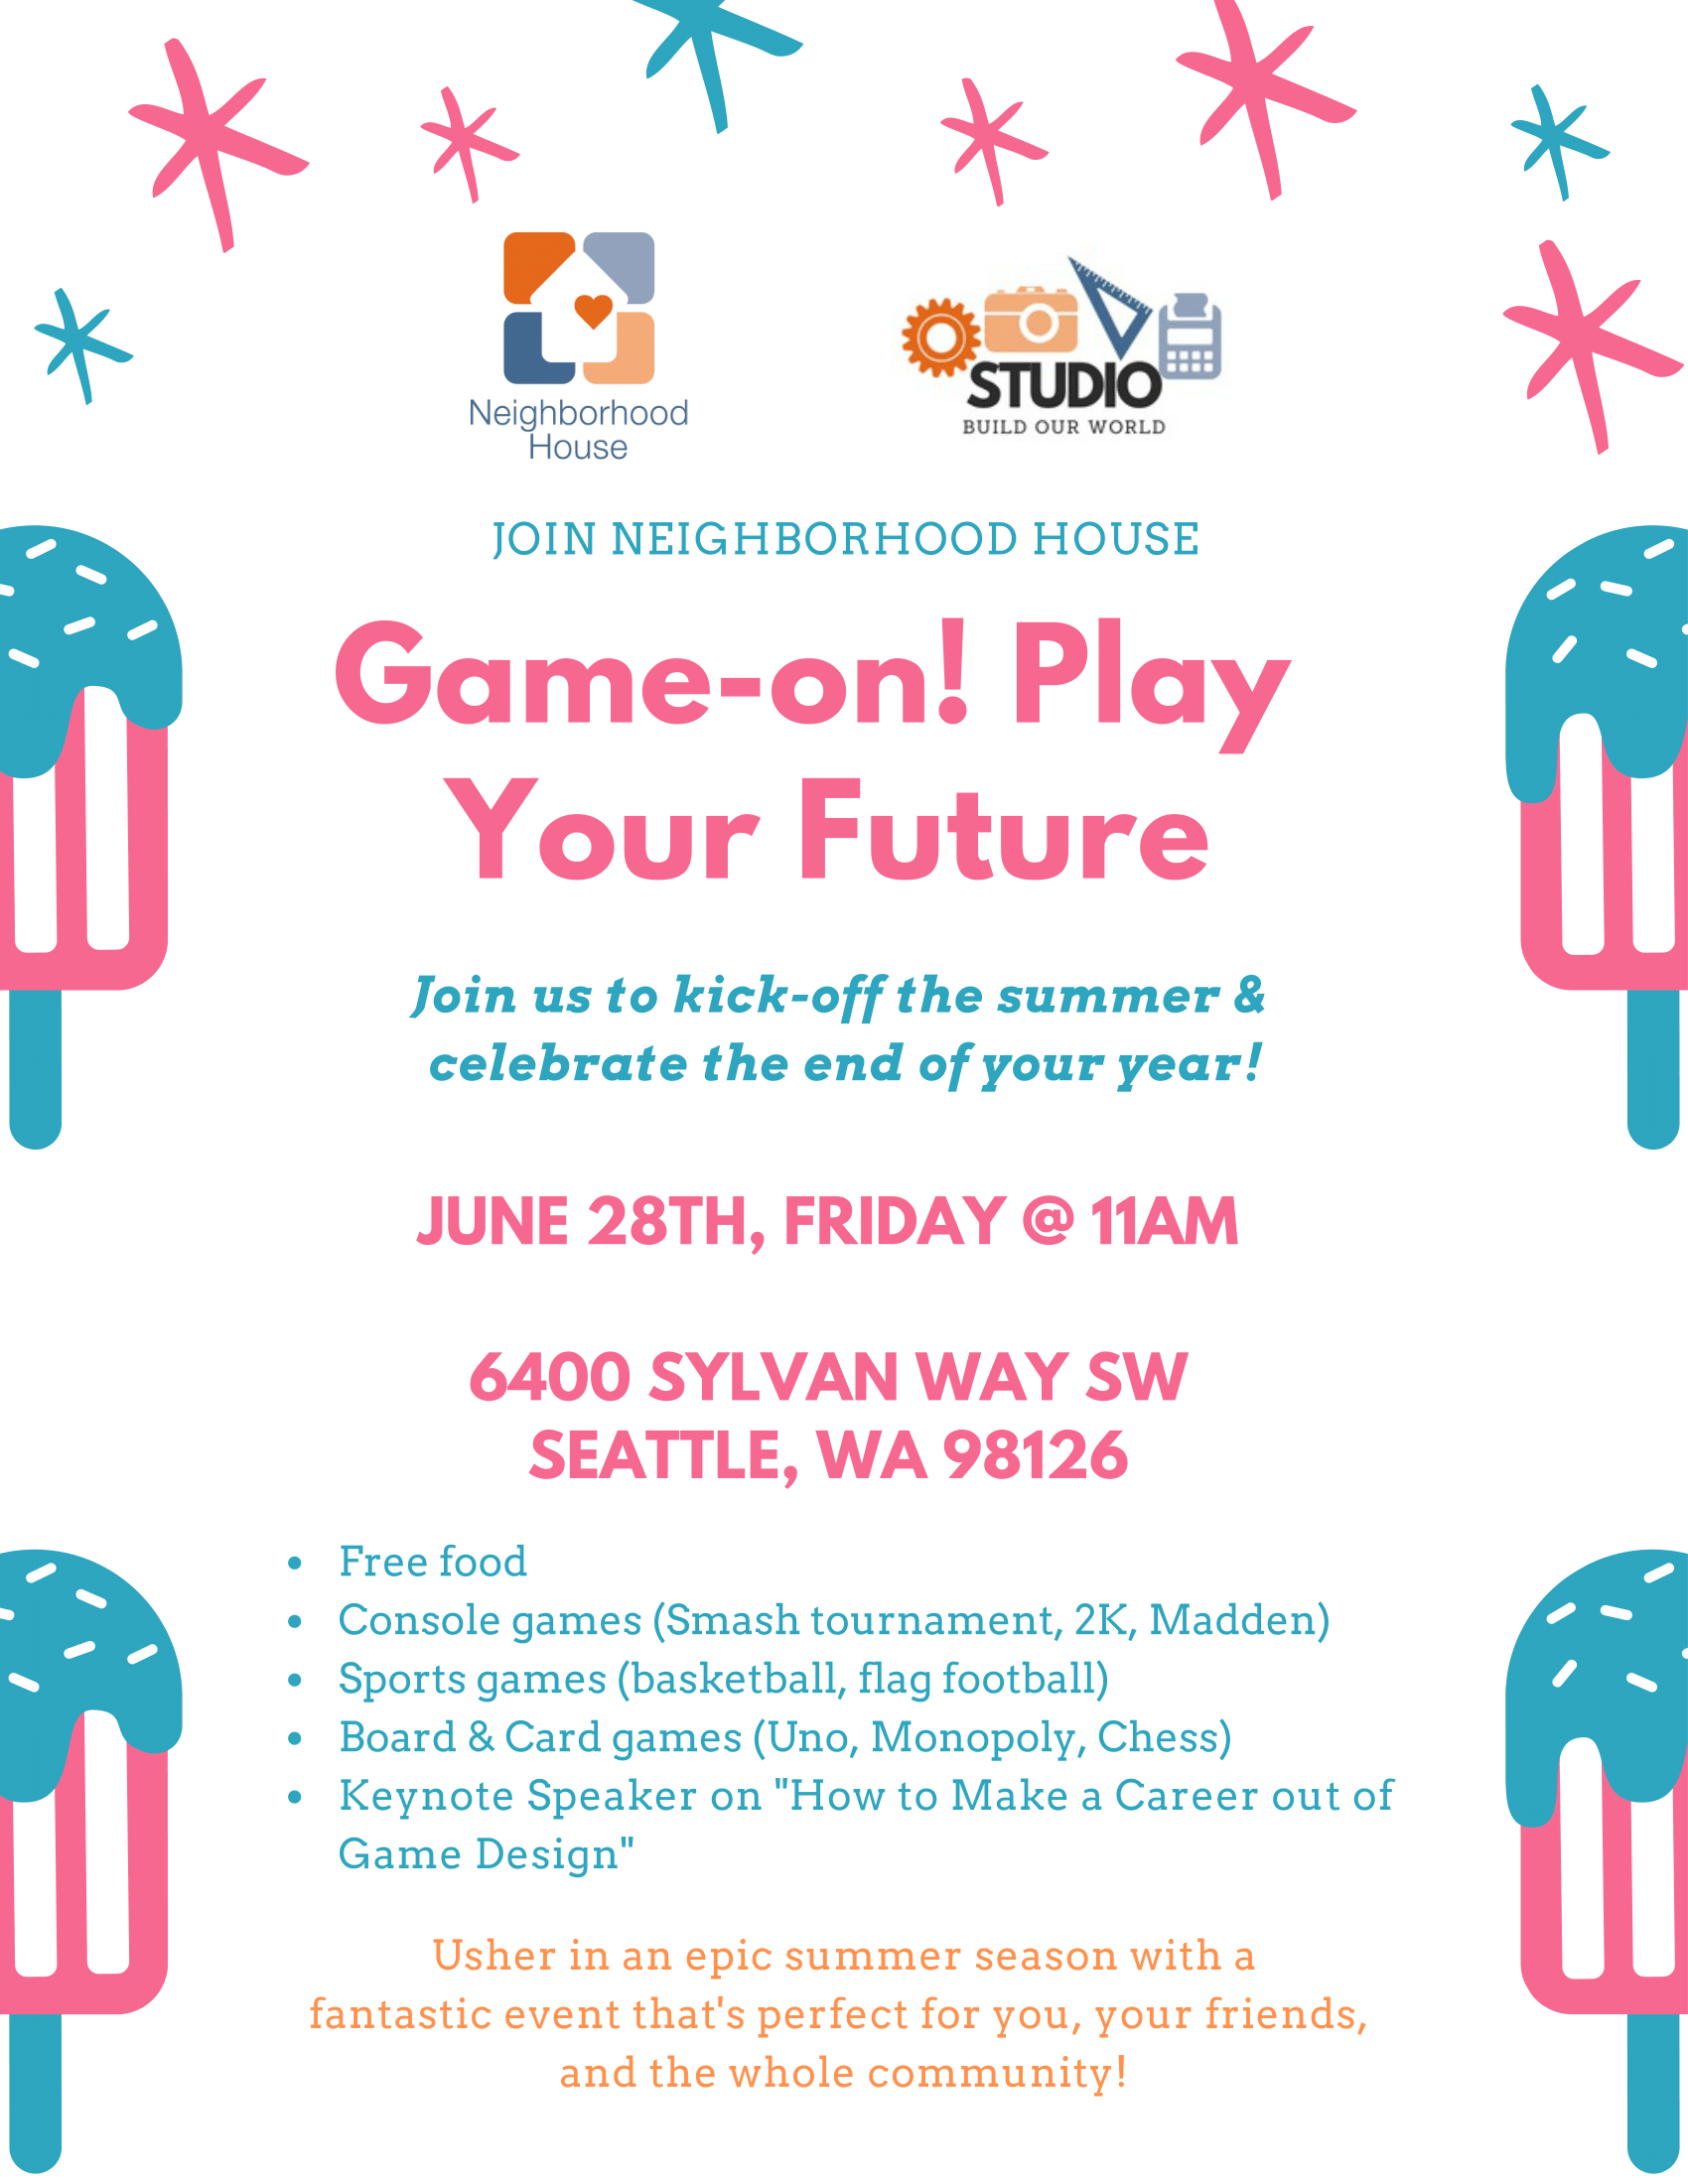 Game on Play Your Future Flyer 2019